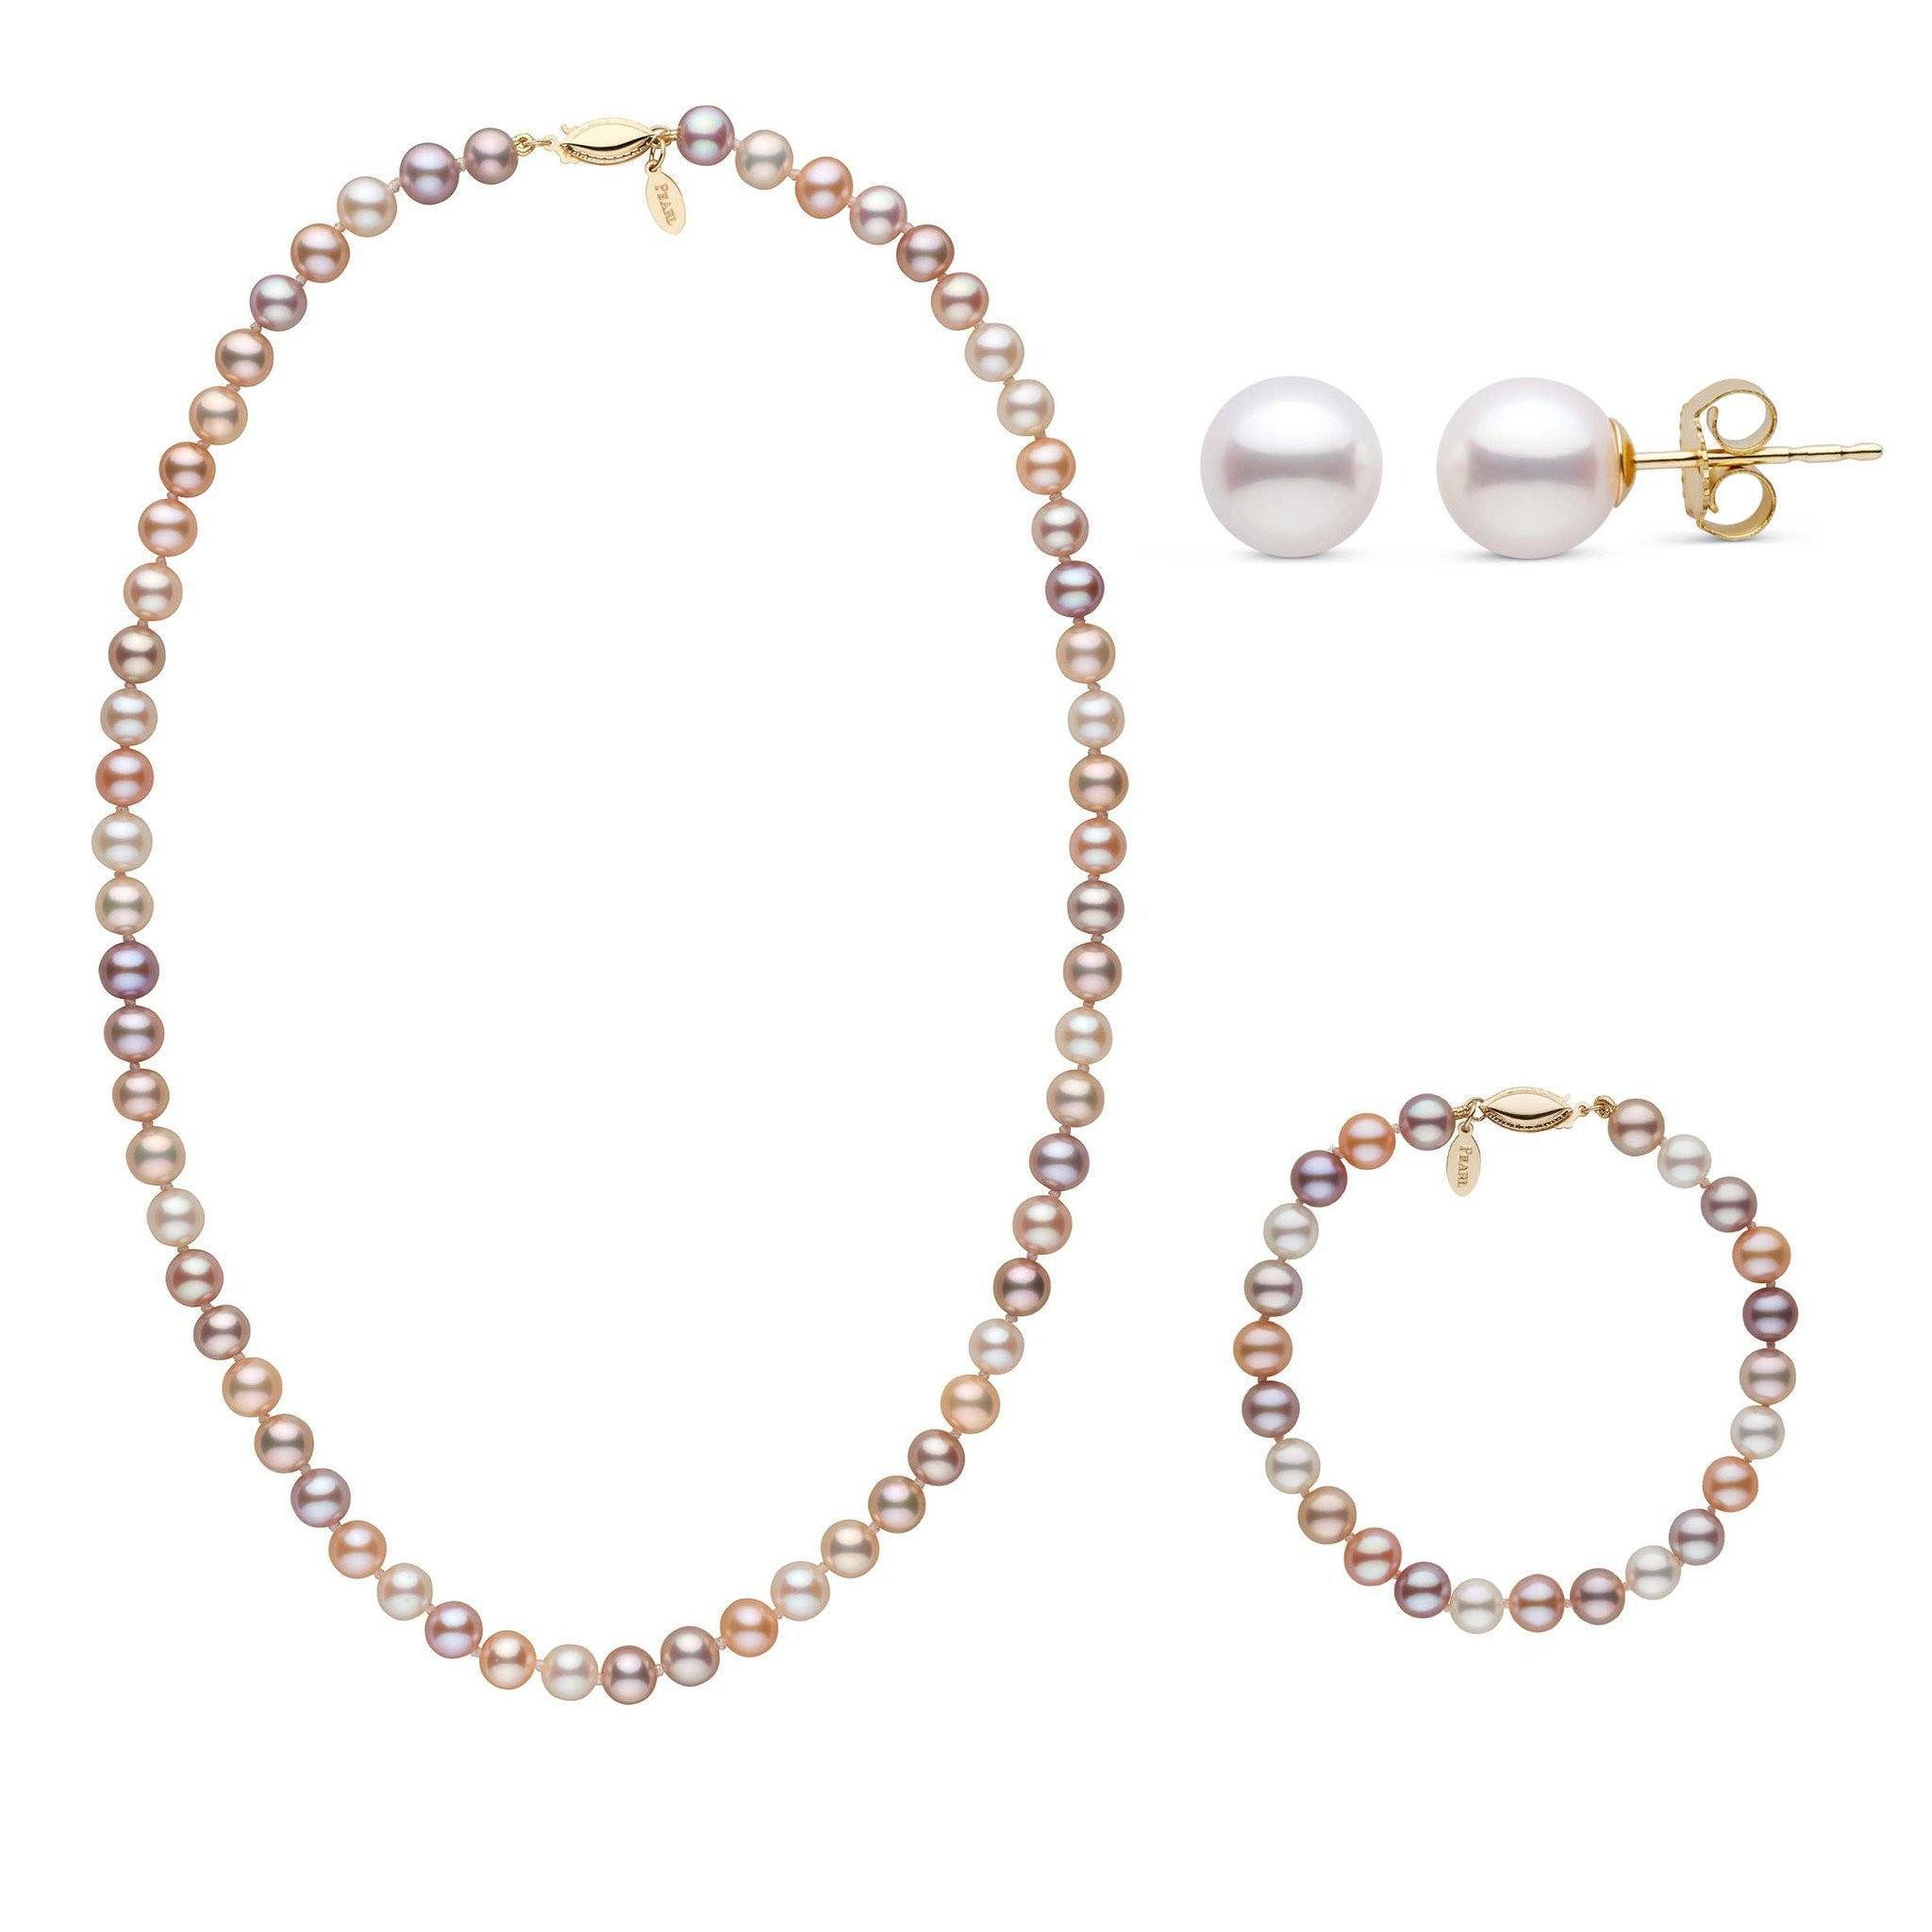 18 Inch 3 Piece Set of 6.5-7.0 mm Freshadama Multicolor Freshwater Pearl